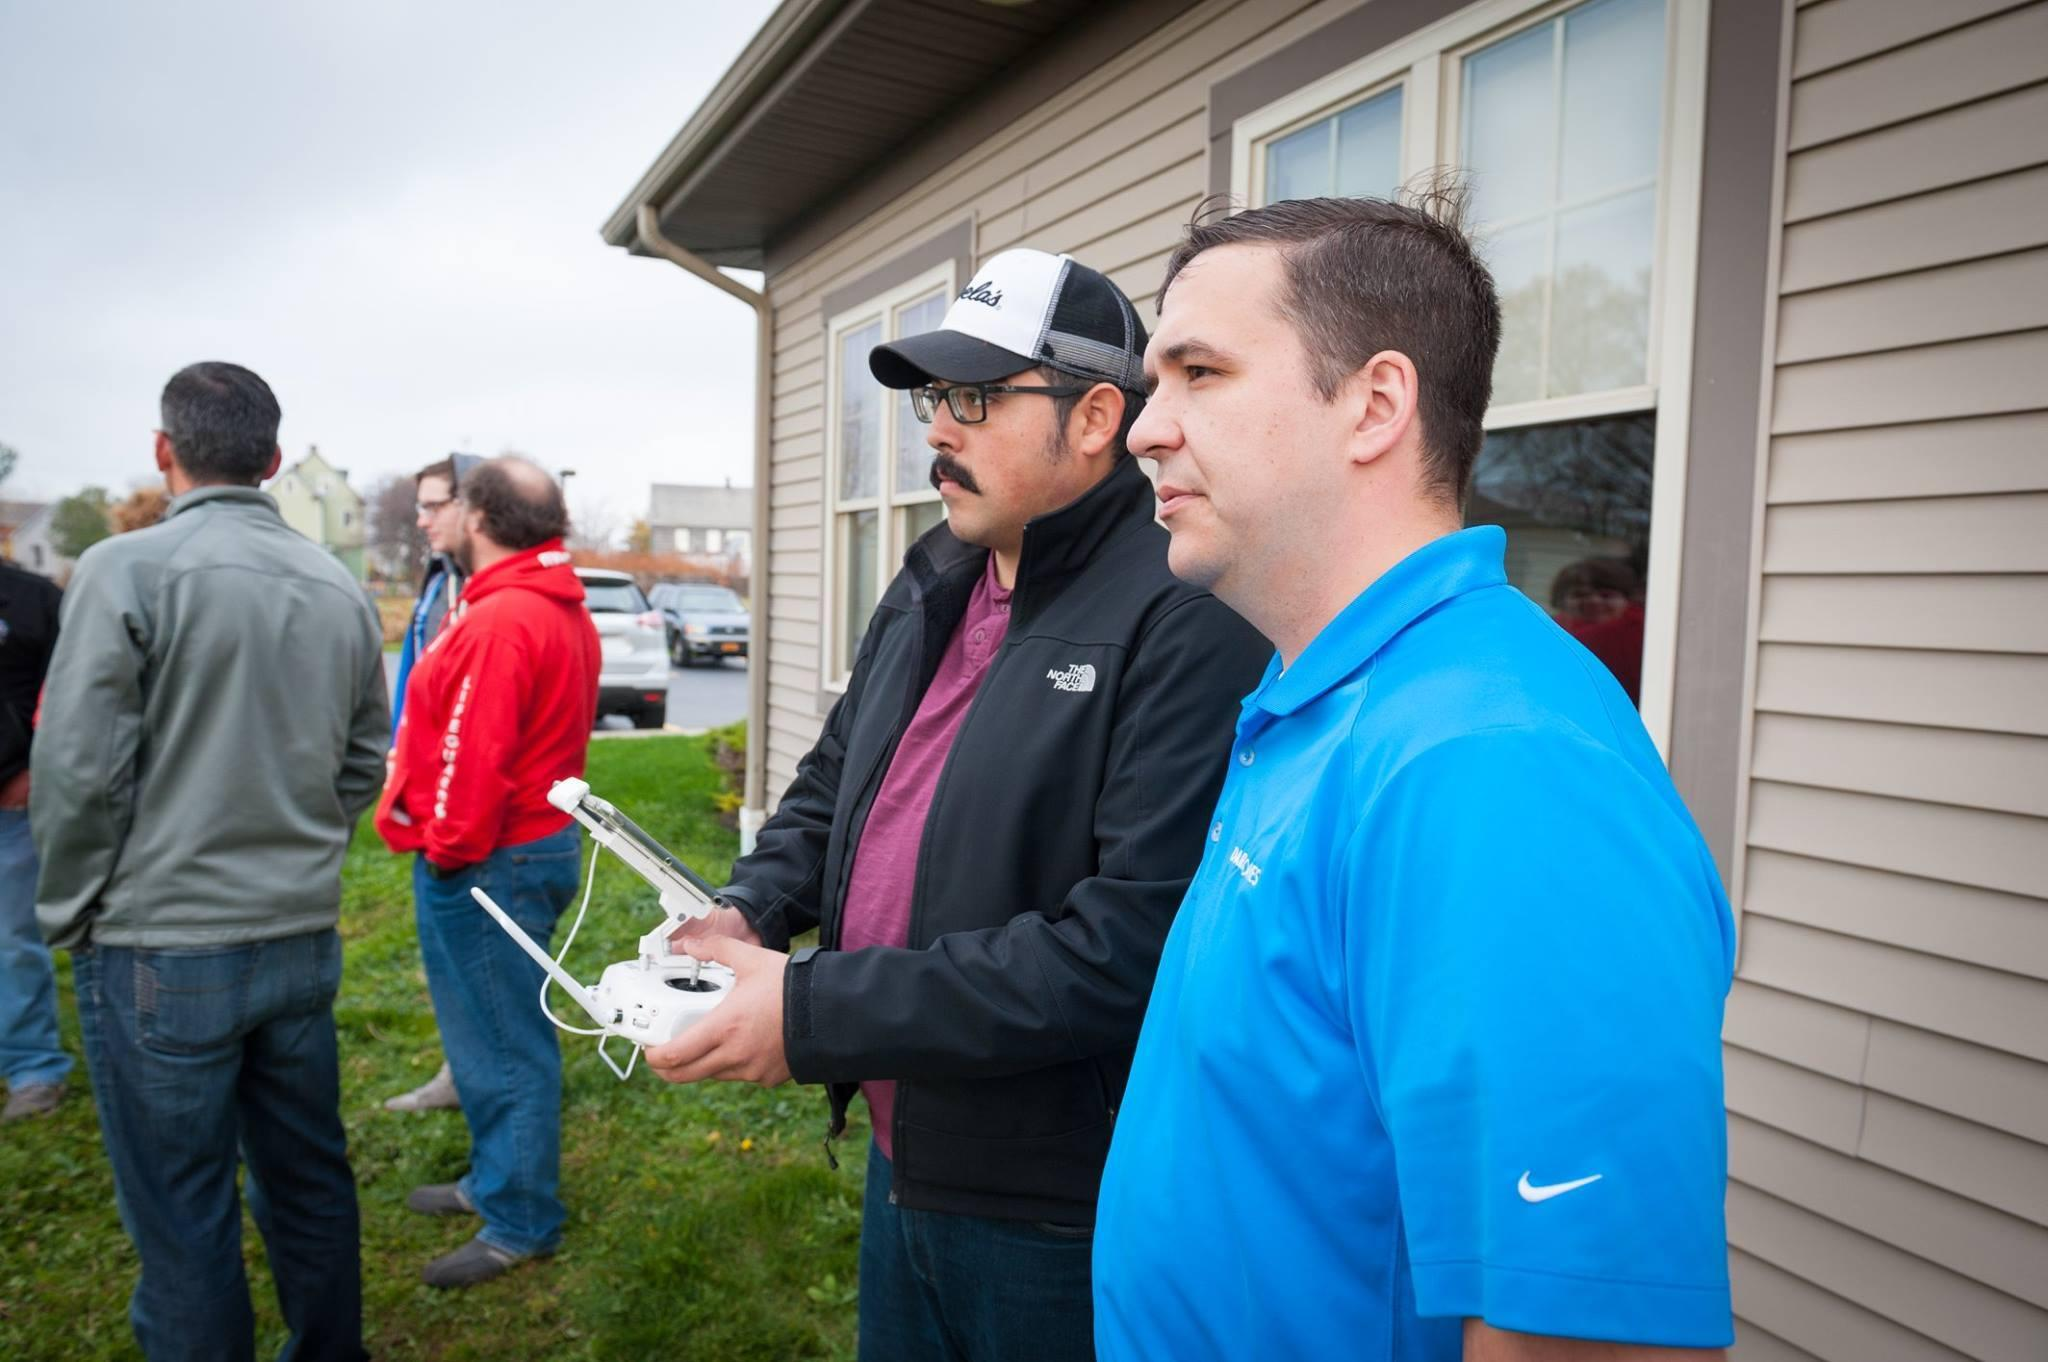 Local 25 Member Dave Morales Drone Training